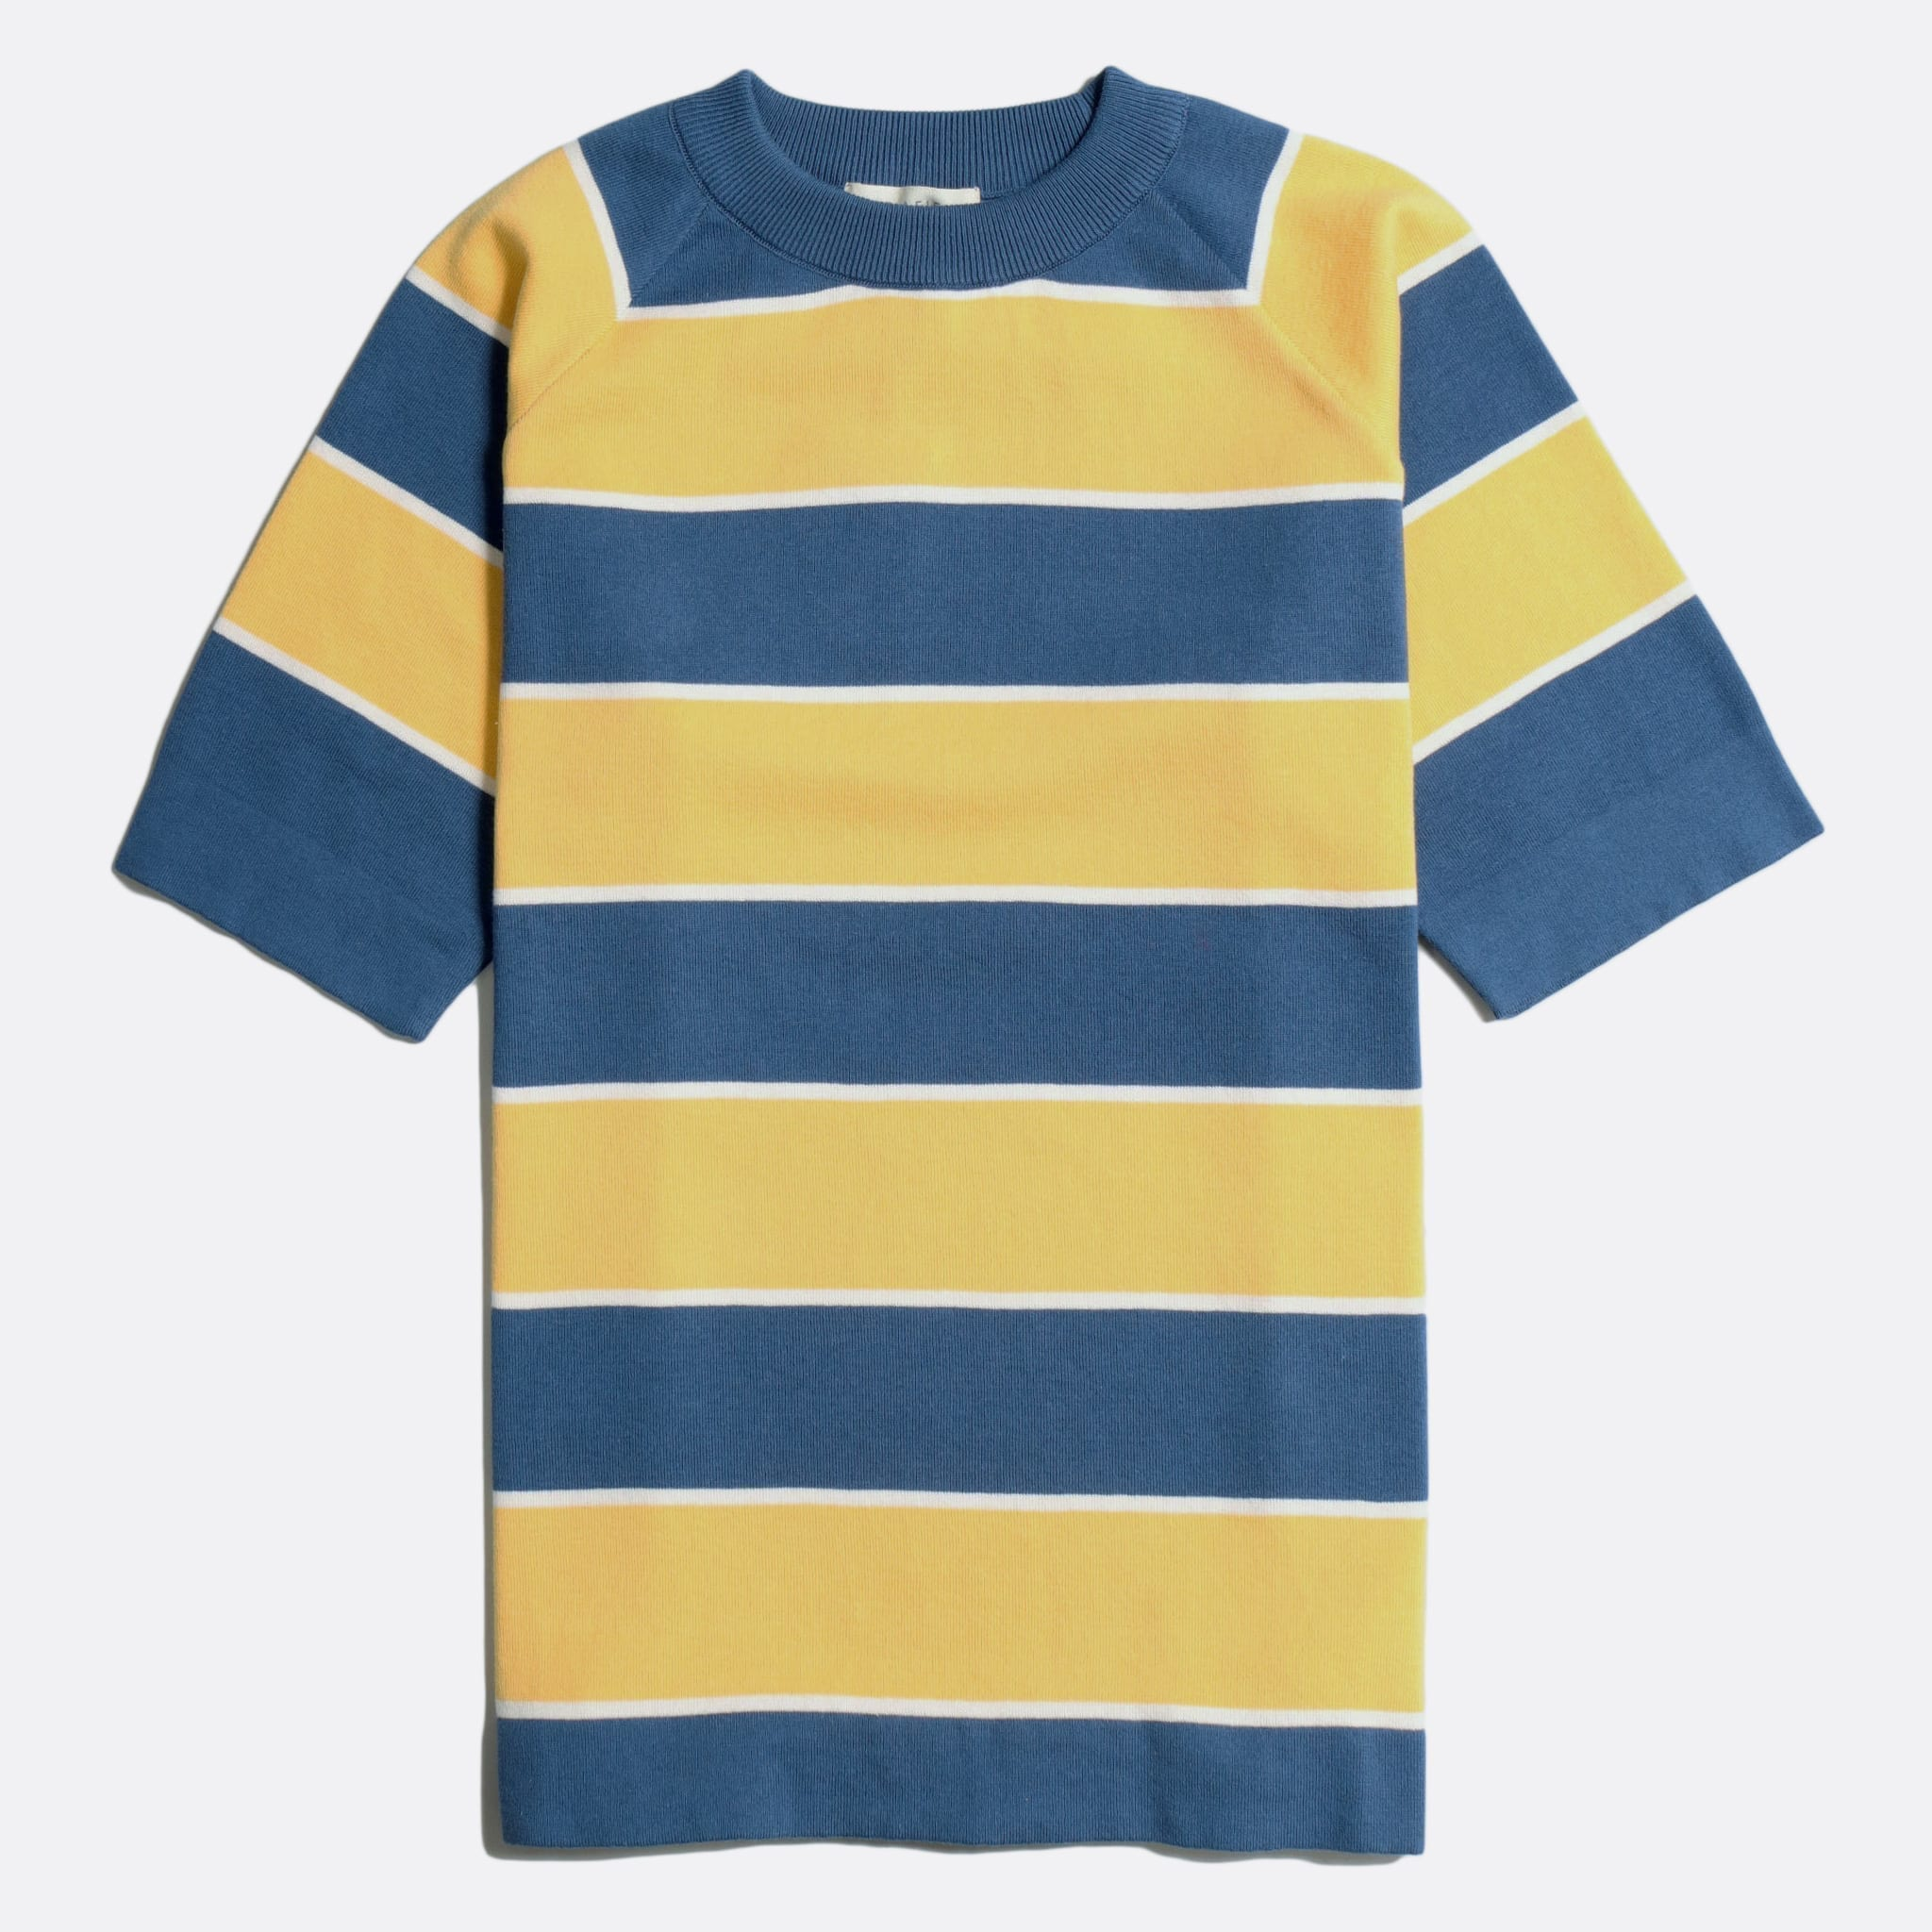 Far Afield Newport T-Shirt a Cornsilk Yellow/Ensign Blue Organic Cotton Fabric Short Sleeve Mid Century Inspired